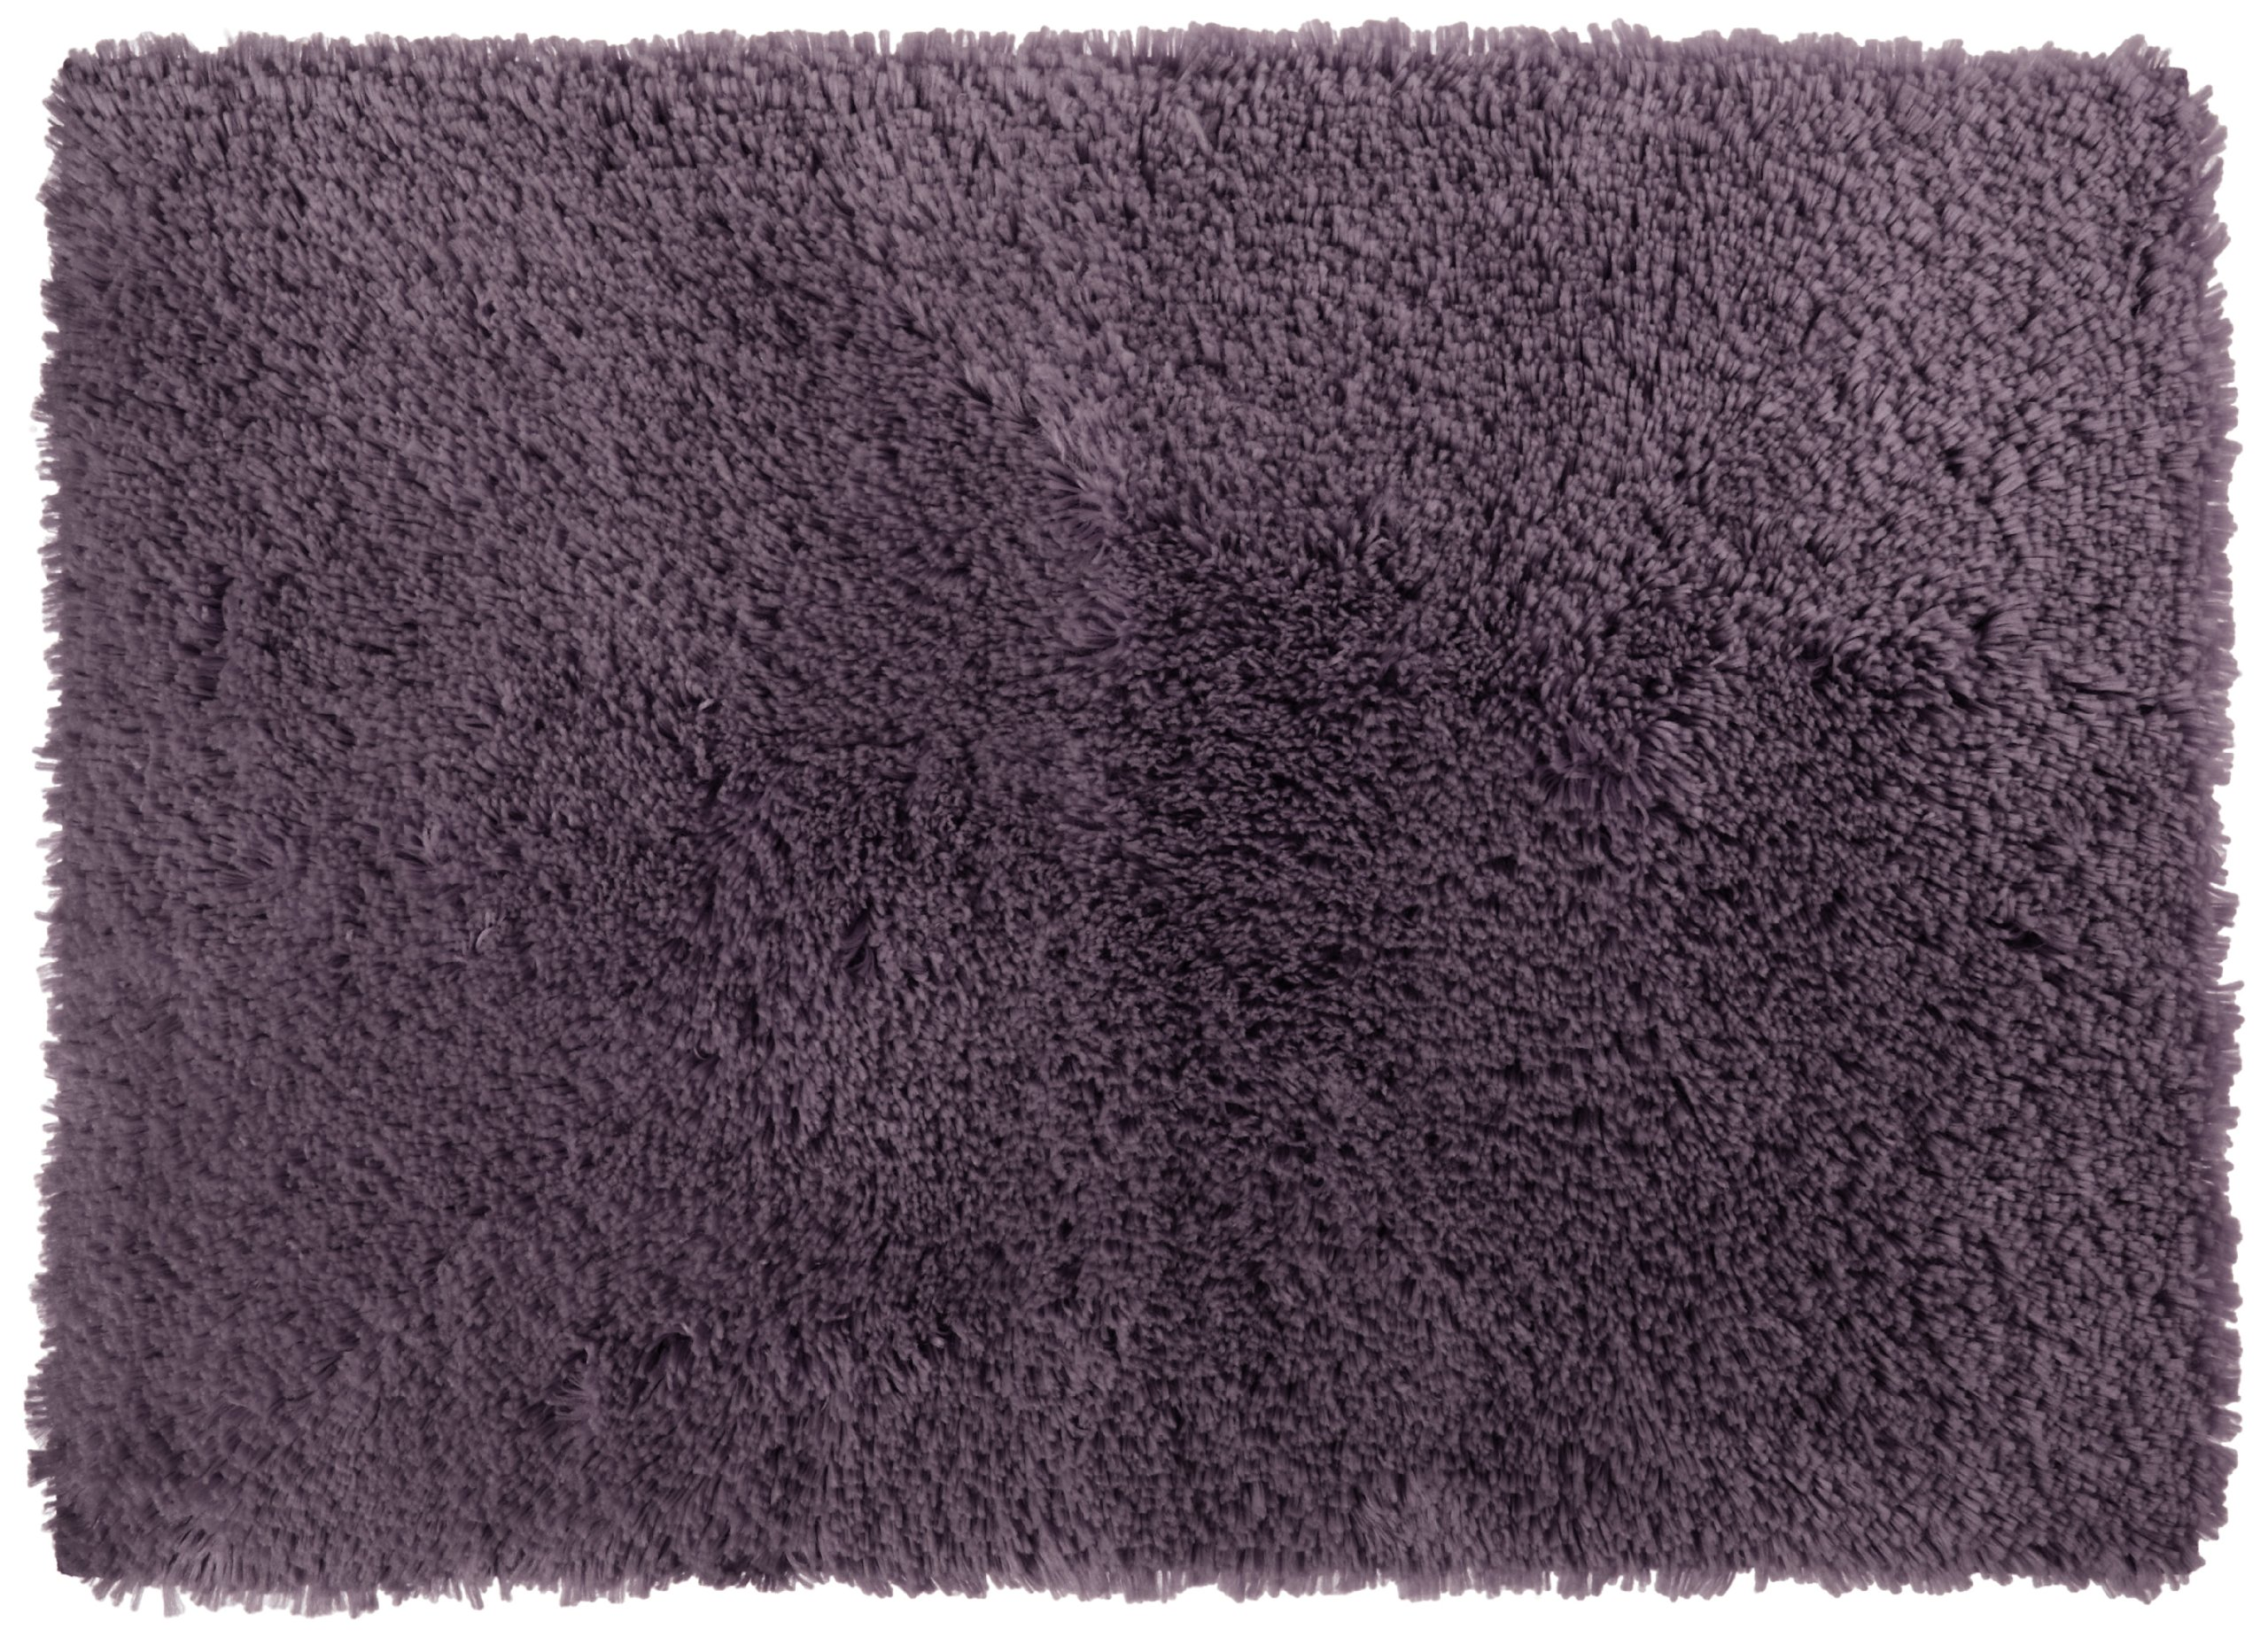 Welspun Crowning Touch Luxurious Non-Slip Bath Rug, 17 by 24-Inch, Eggplant